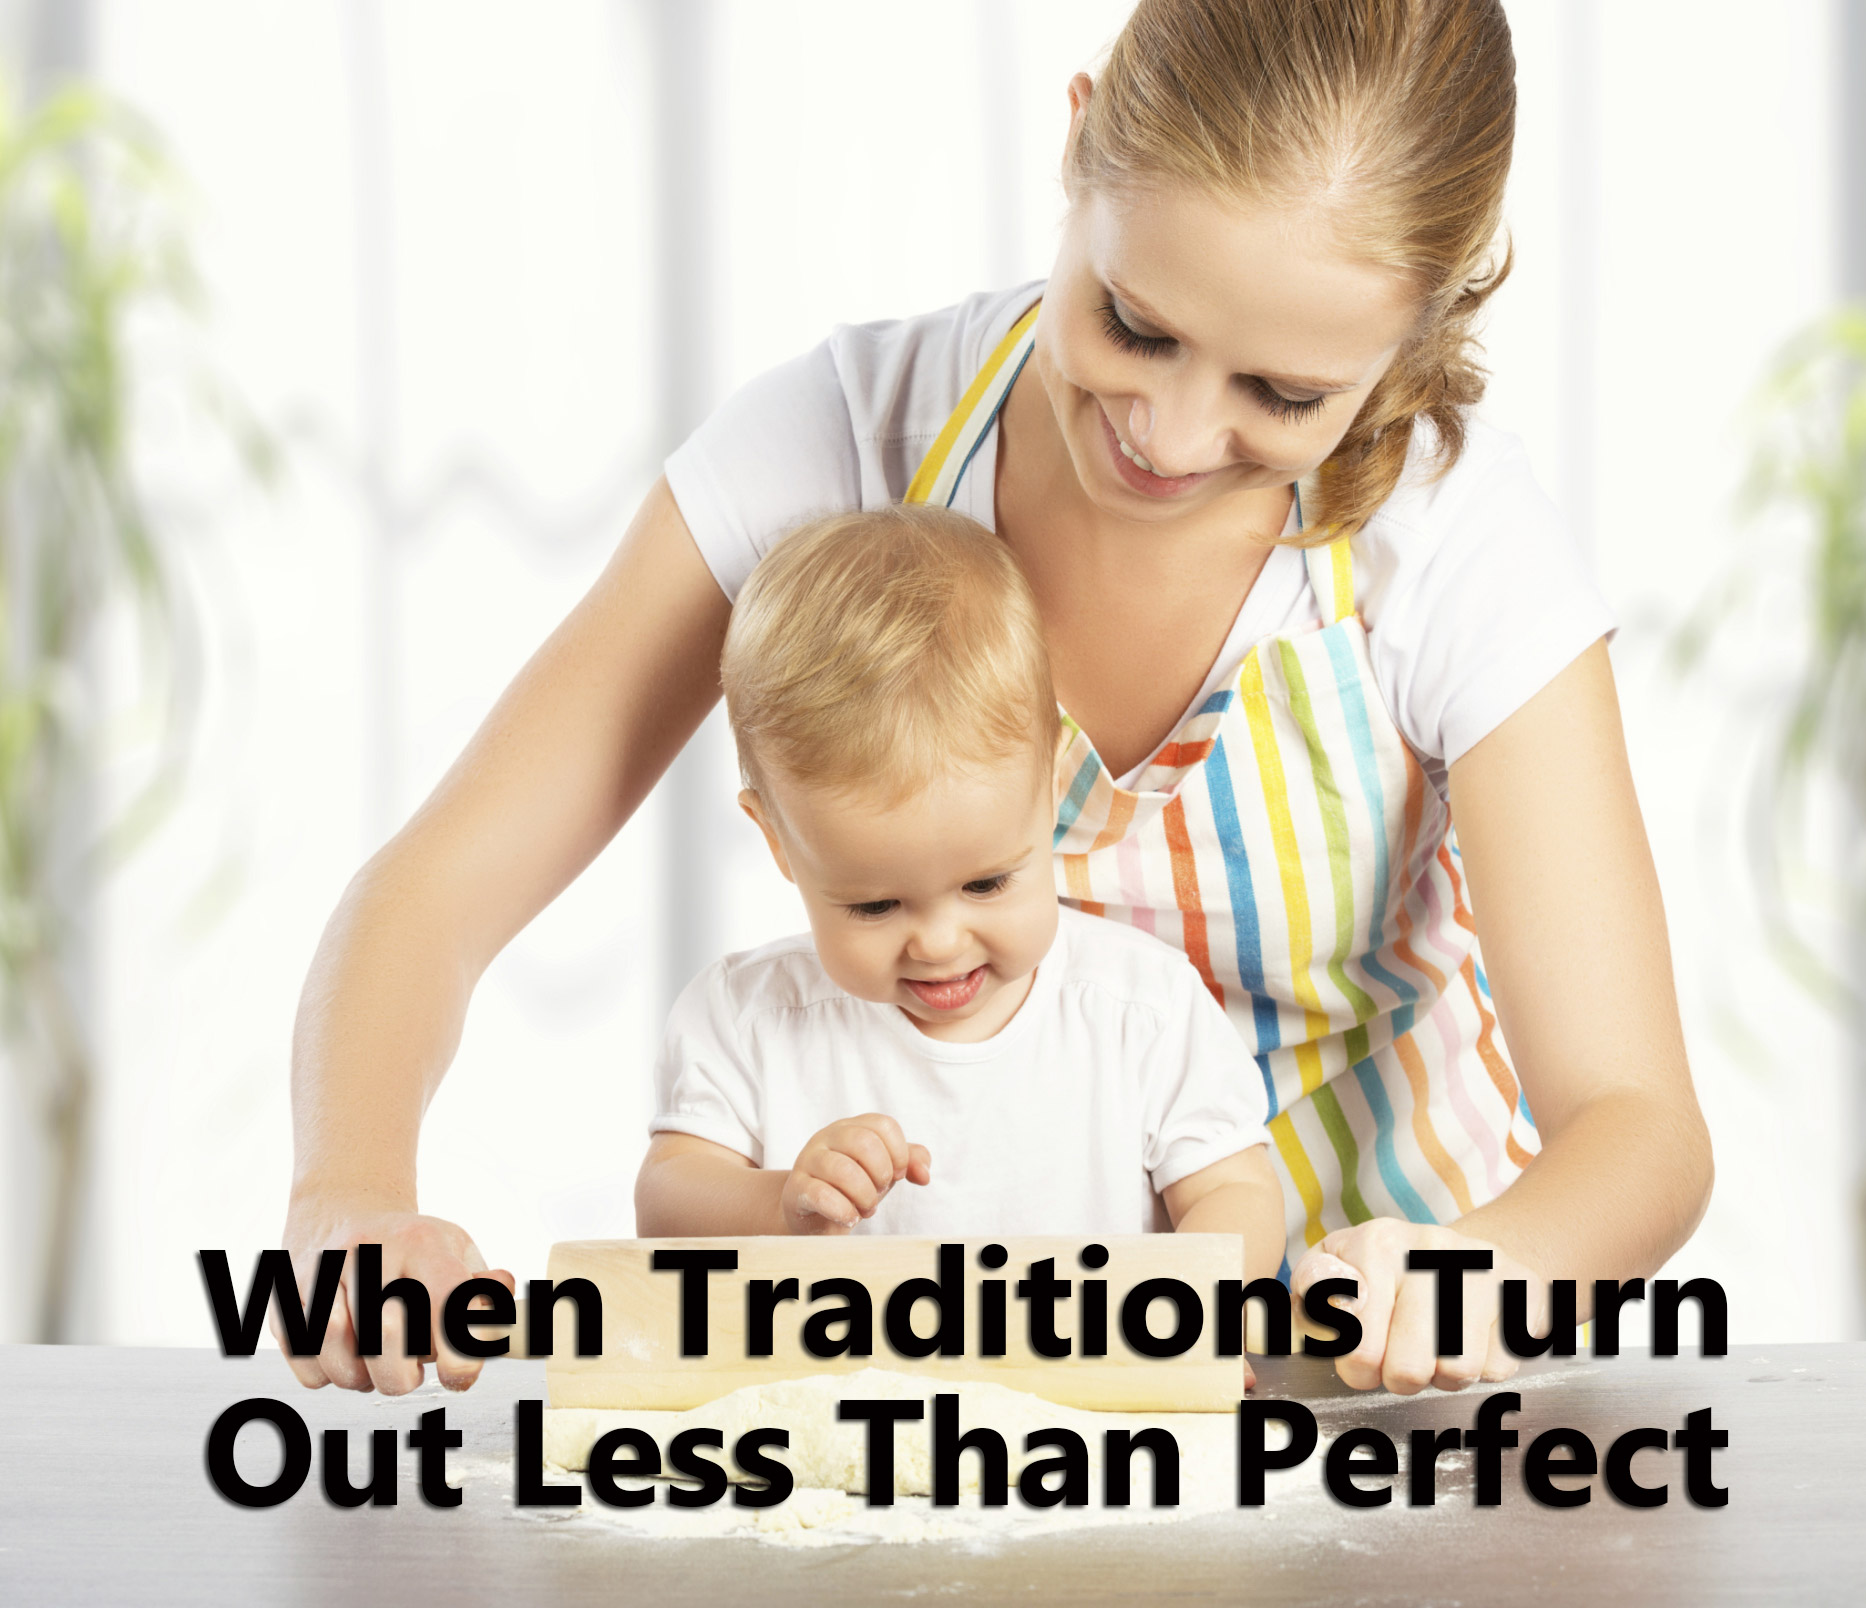 When Traditions Turn Out Less Than Perfect